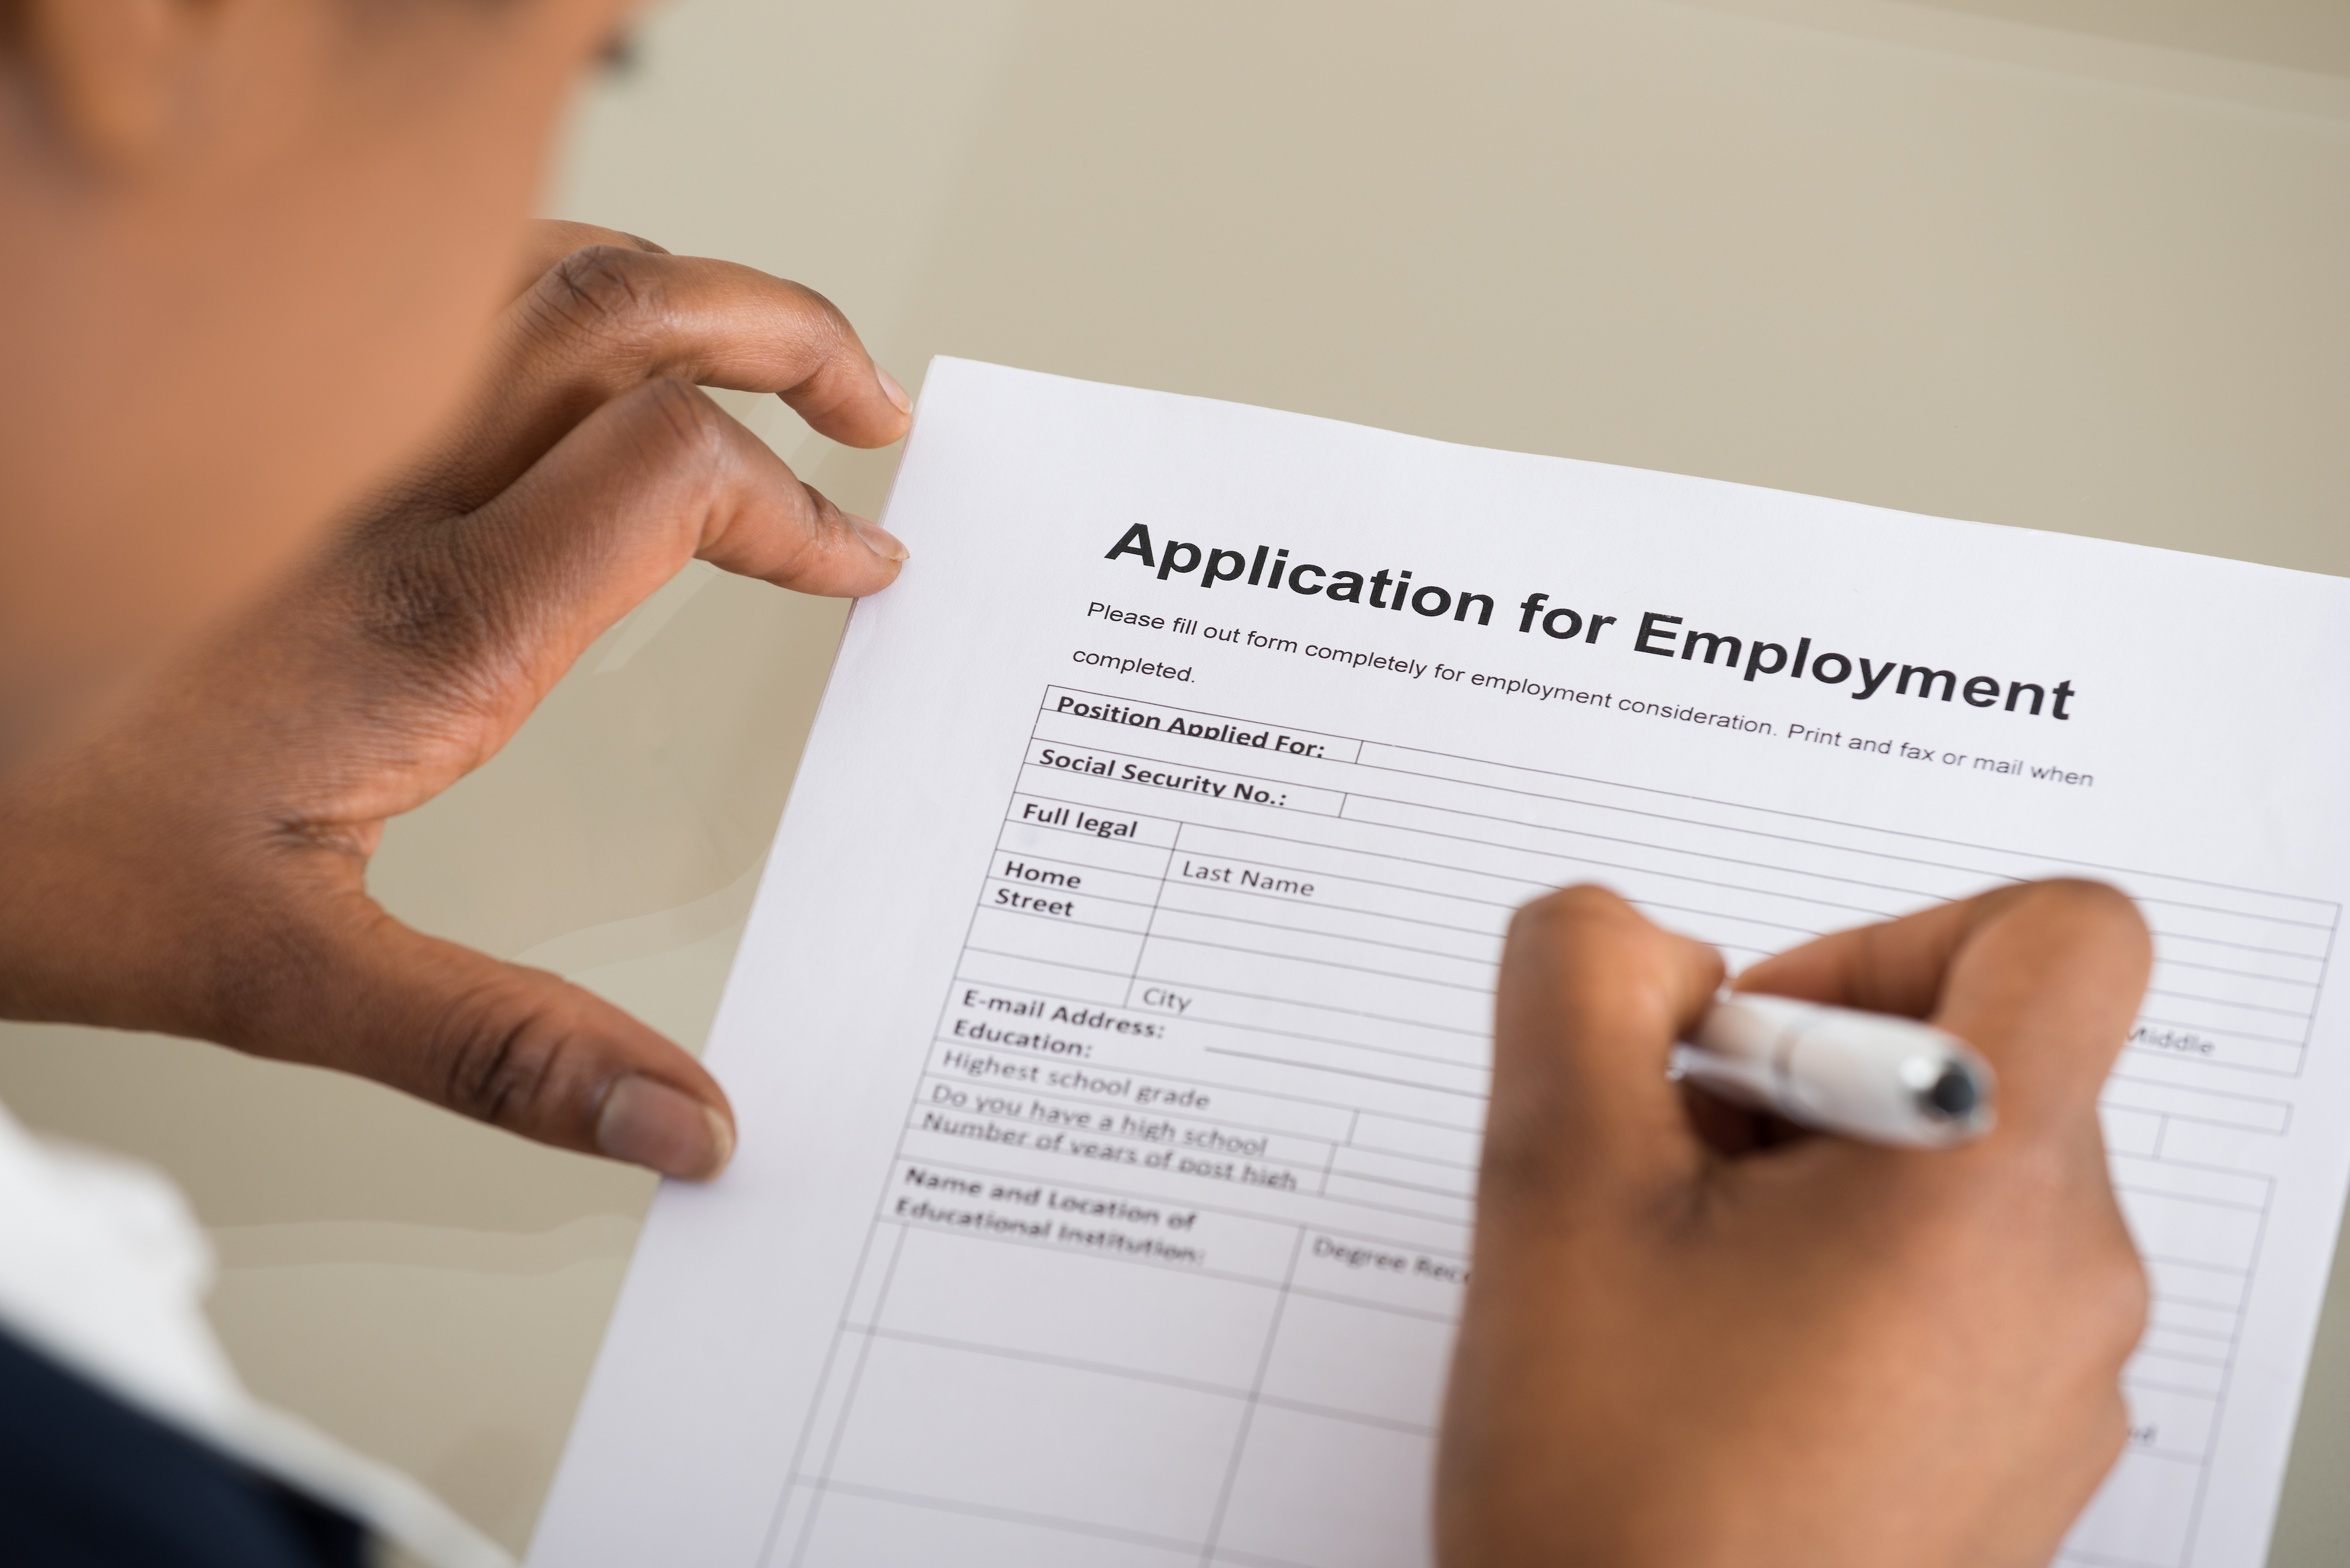 South Africa: how to support young job hunters